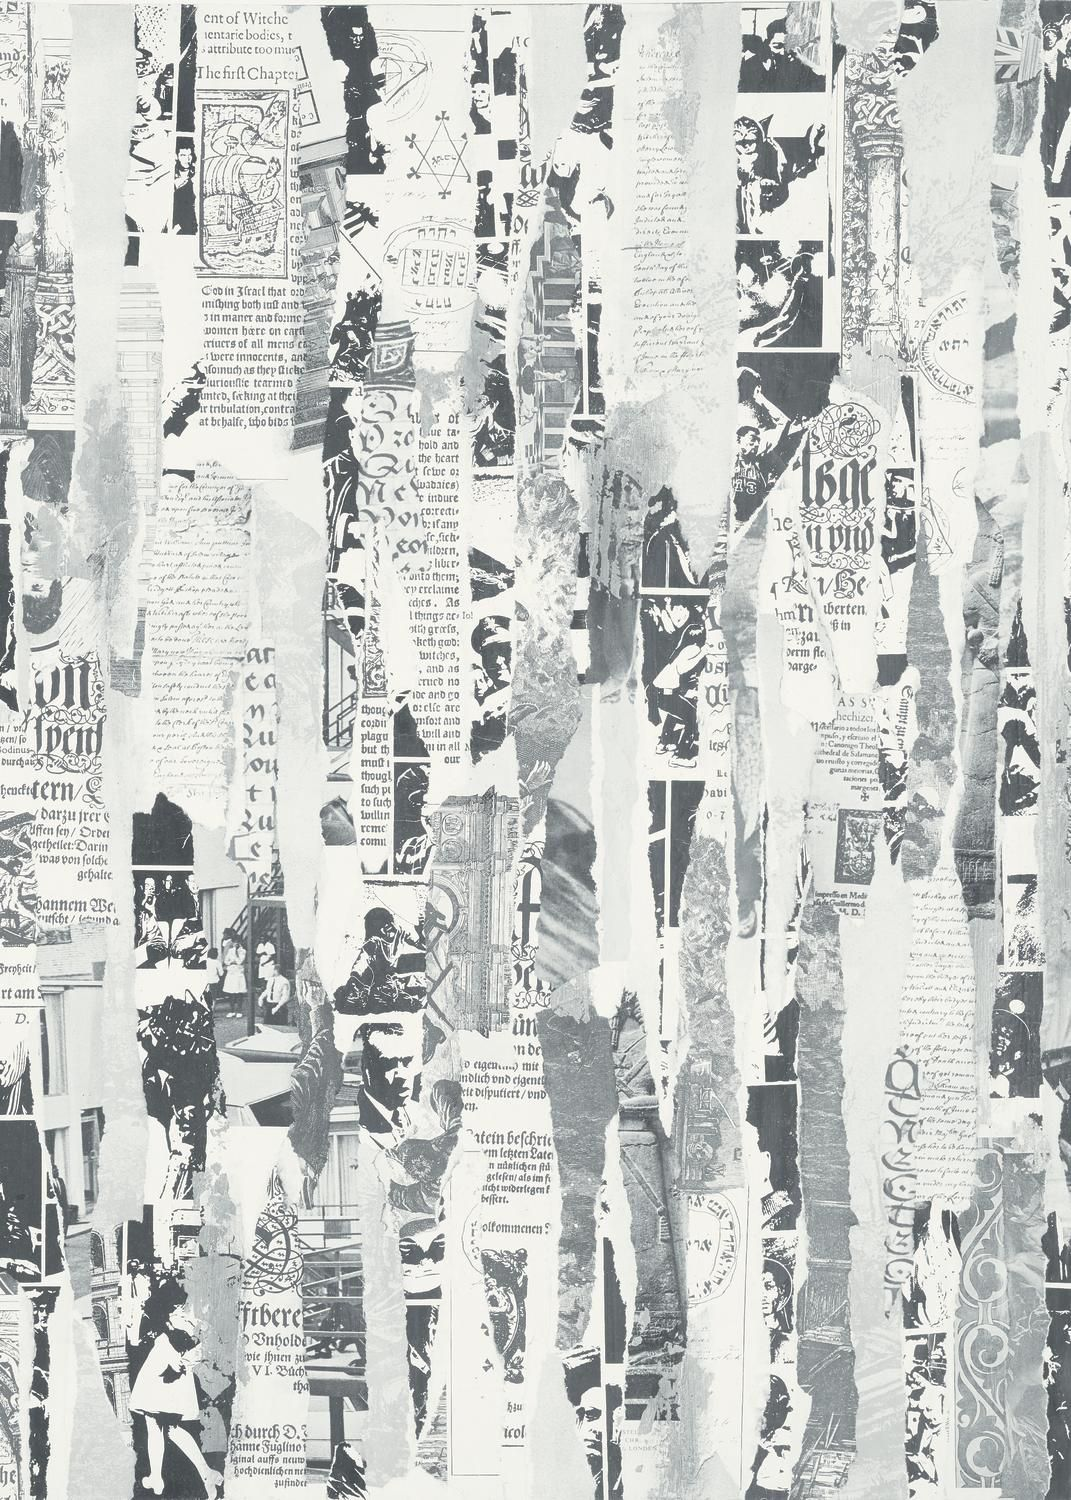 Shades Wallpaper Wall Panel Newspaper Sha 6795 90 00 Sha67959000 By